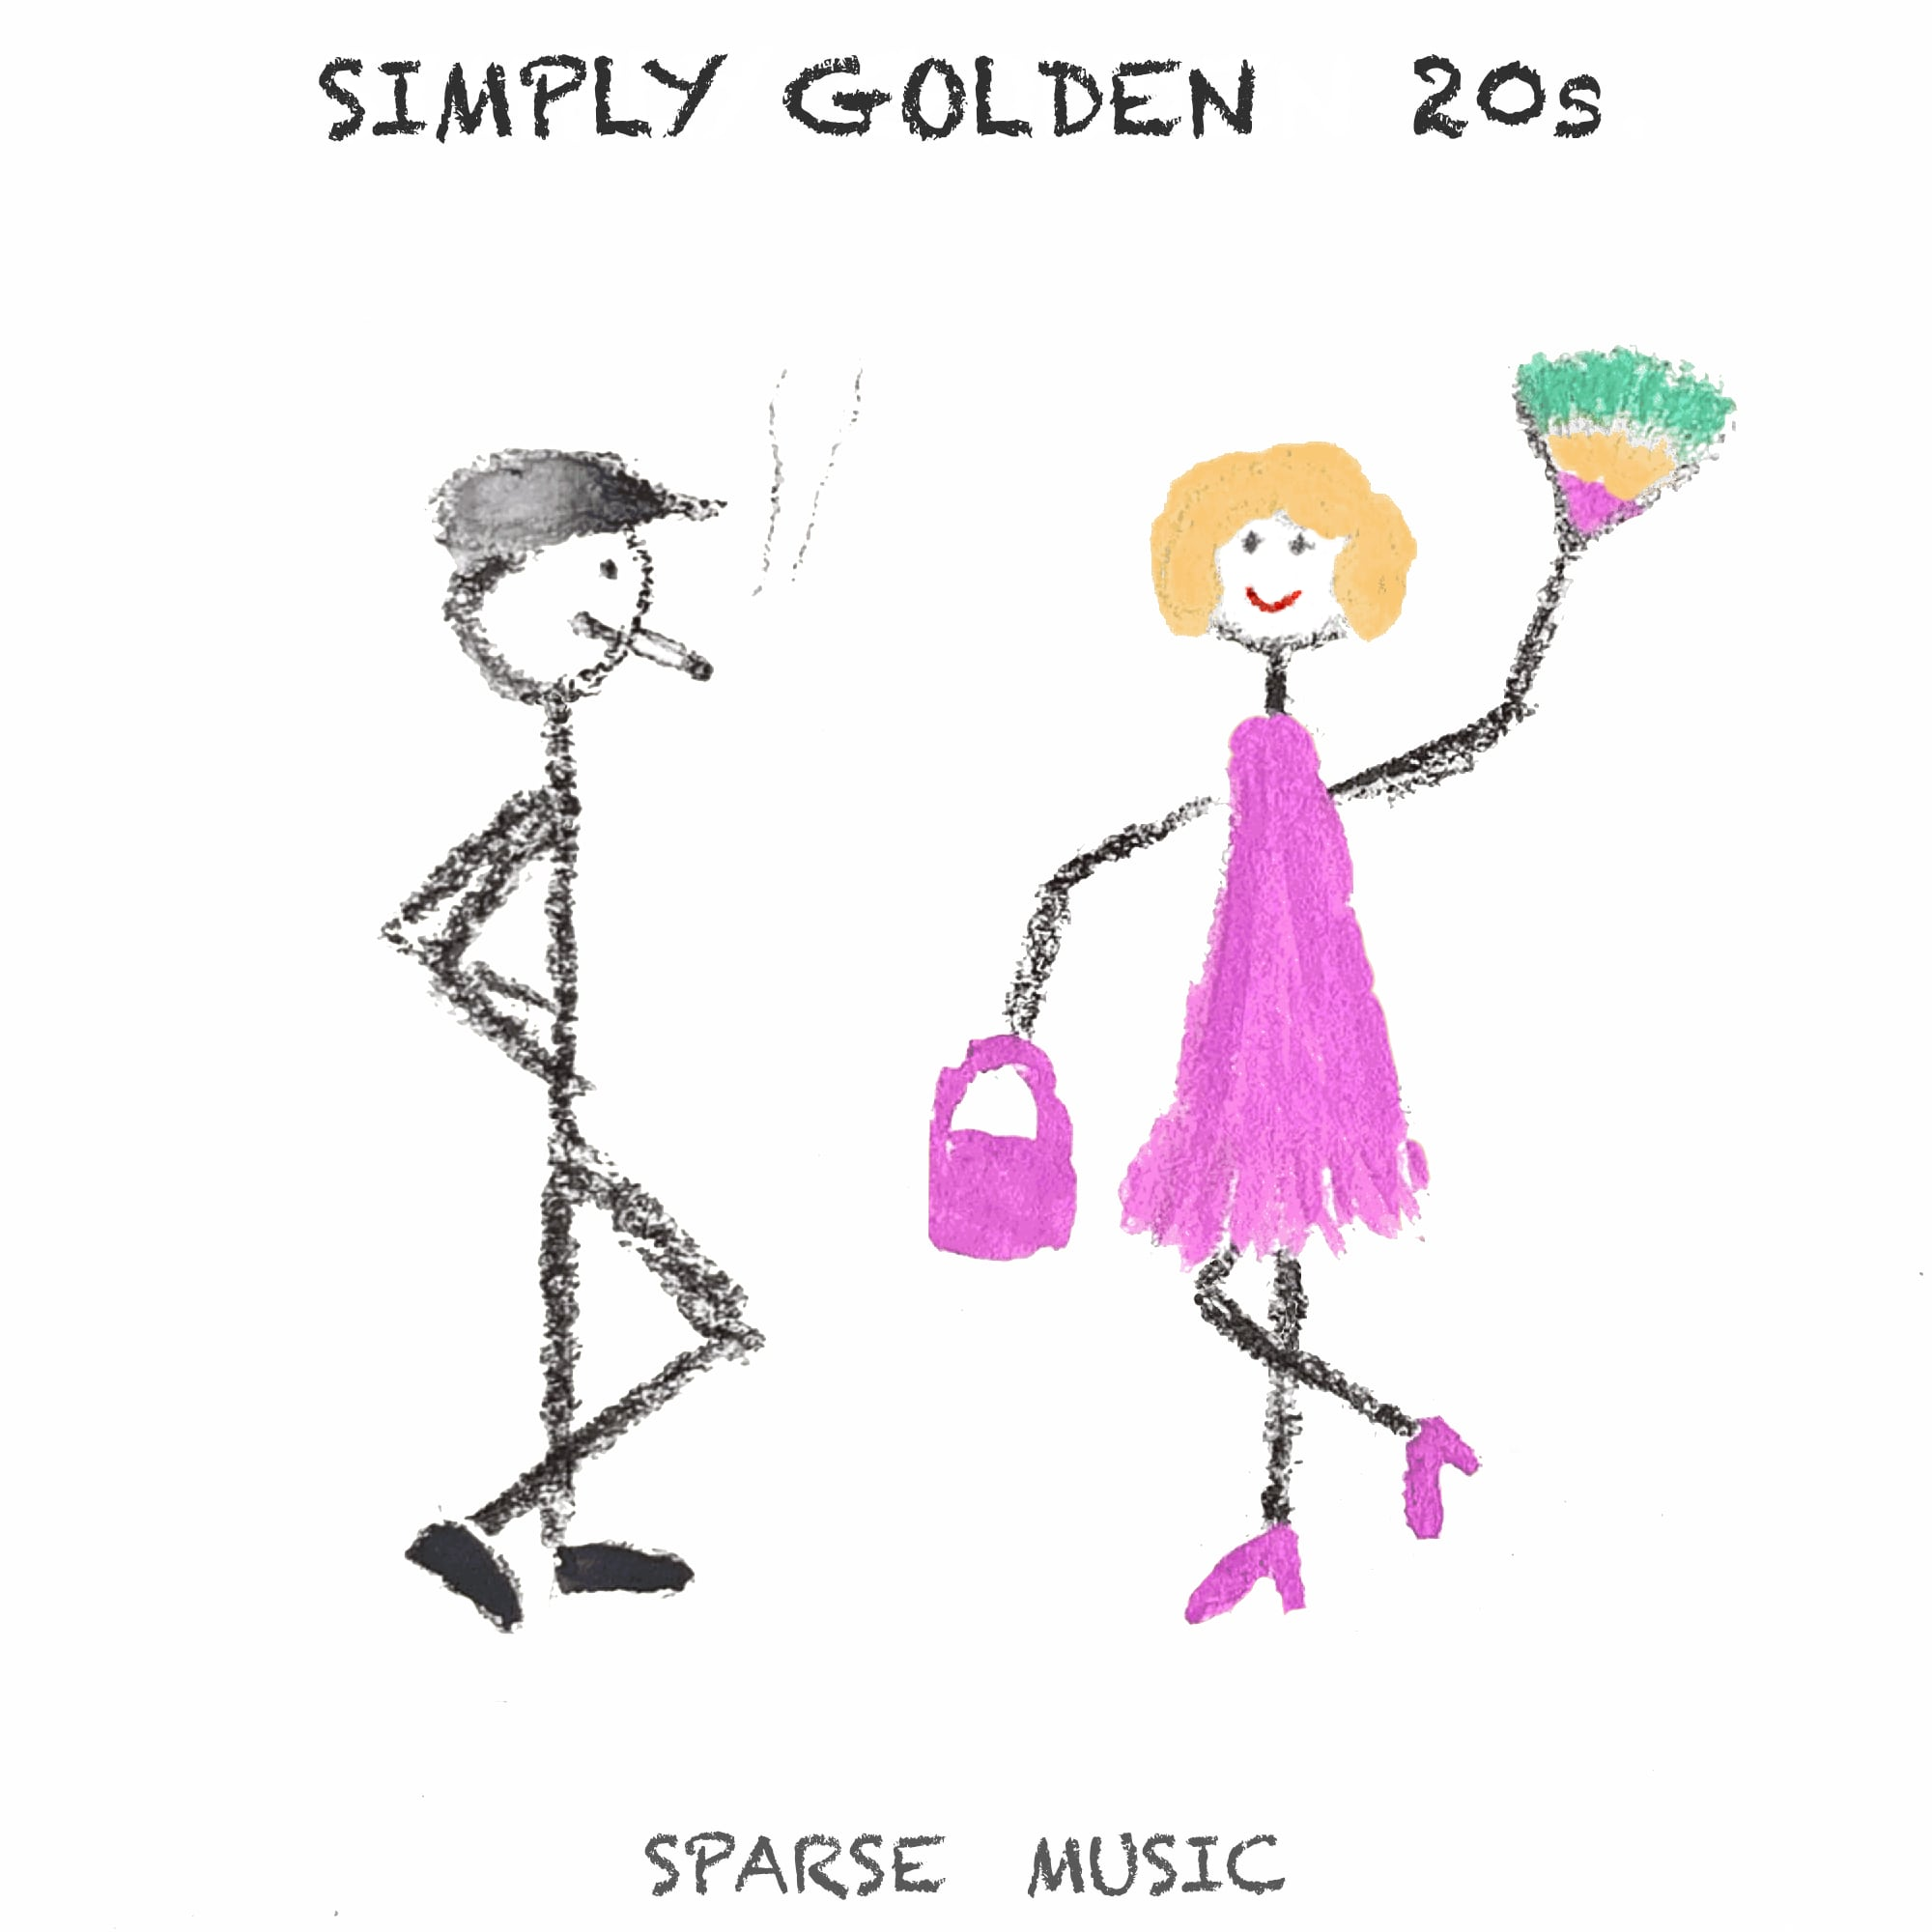 SPRS 01075 SIMPLY GOLDEN 20s 2000